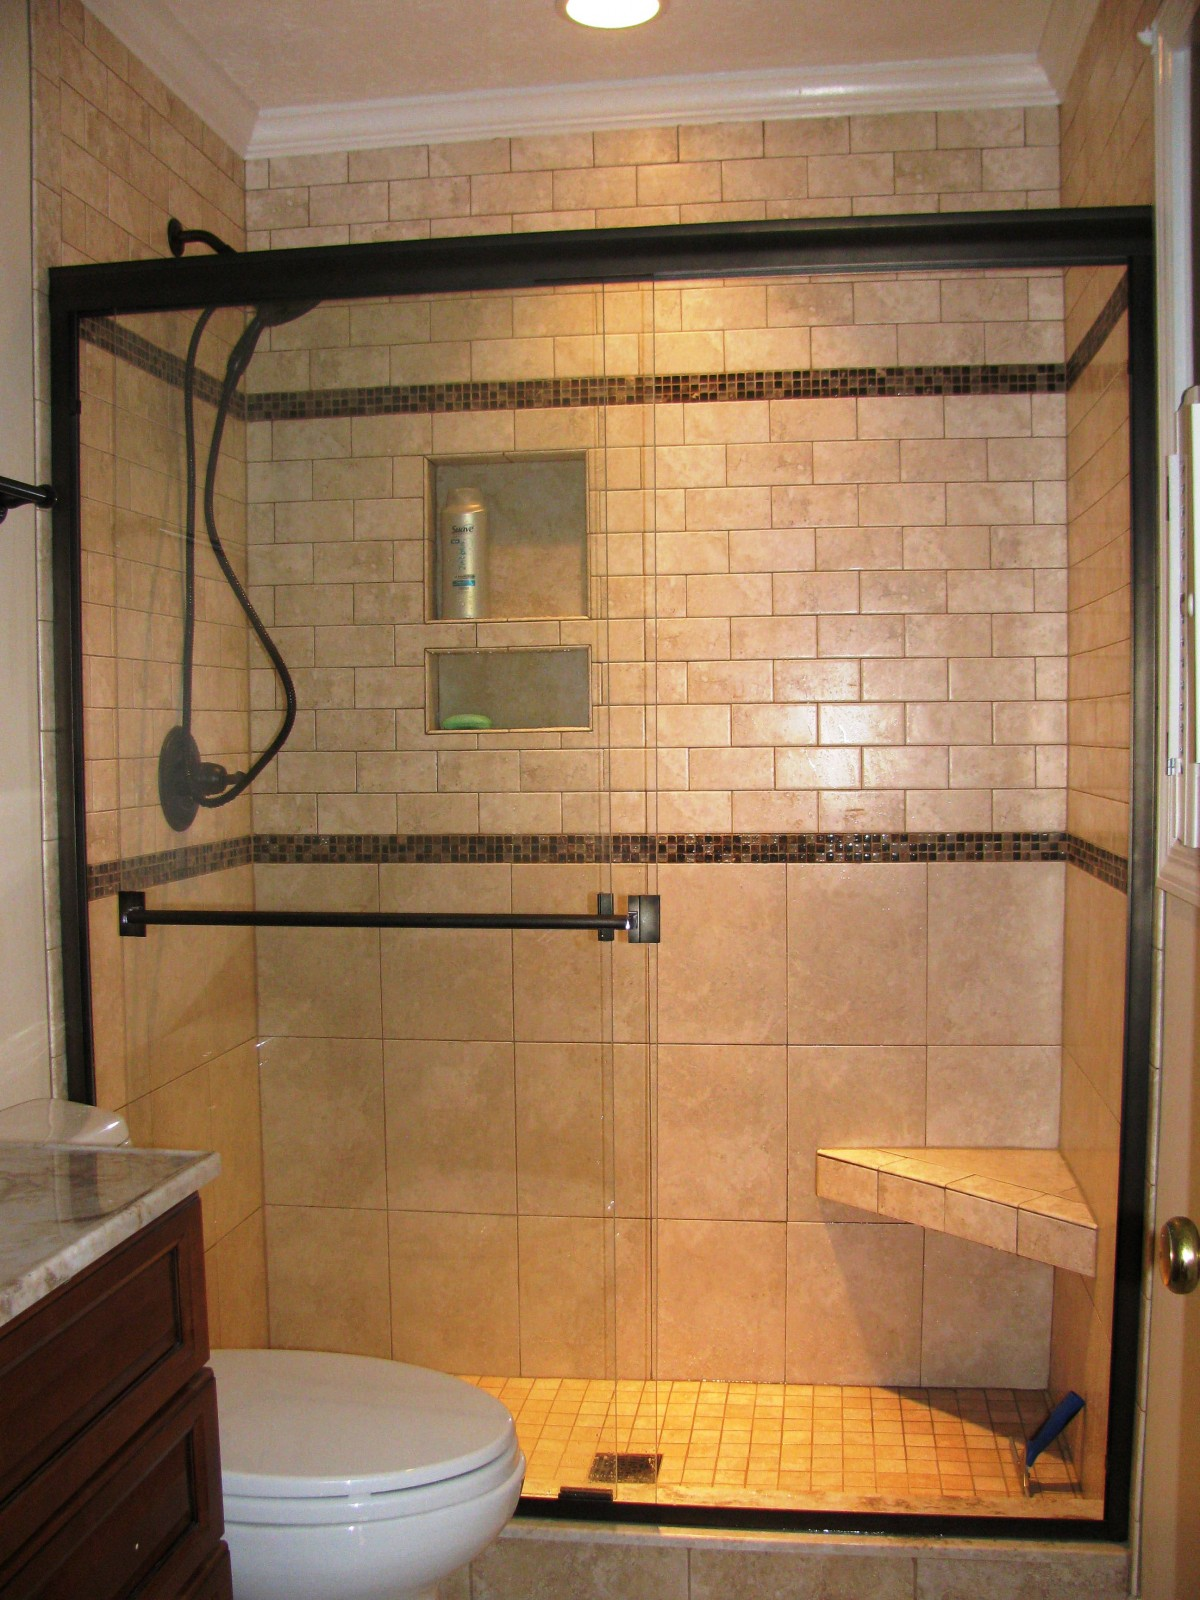 30 Shower tile ideas on a budget on corner bathroom vanities for small bathrooms, corner bathroom cabinets online, corner bathroom shelving ideas, jack and jill bathroom design ideas, master bathroom remodeling ideas, bathroom cabinets design ideas, corner door ideas, corner bathroom cabinets and mirrors, corner coat rack ideas, corner bathroom counter organizer, corner medicine cabinet, corner bathroom countertop ideas, corner storage cabinet, corner lazy susan ideas, corner linen cabinet, corner cabinets for bathroom, corner bathroom vanity, corner dresser ideas, corner cabinet furniture, corner bathroom storage,